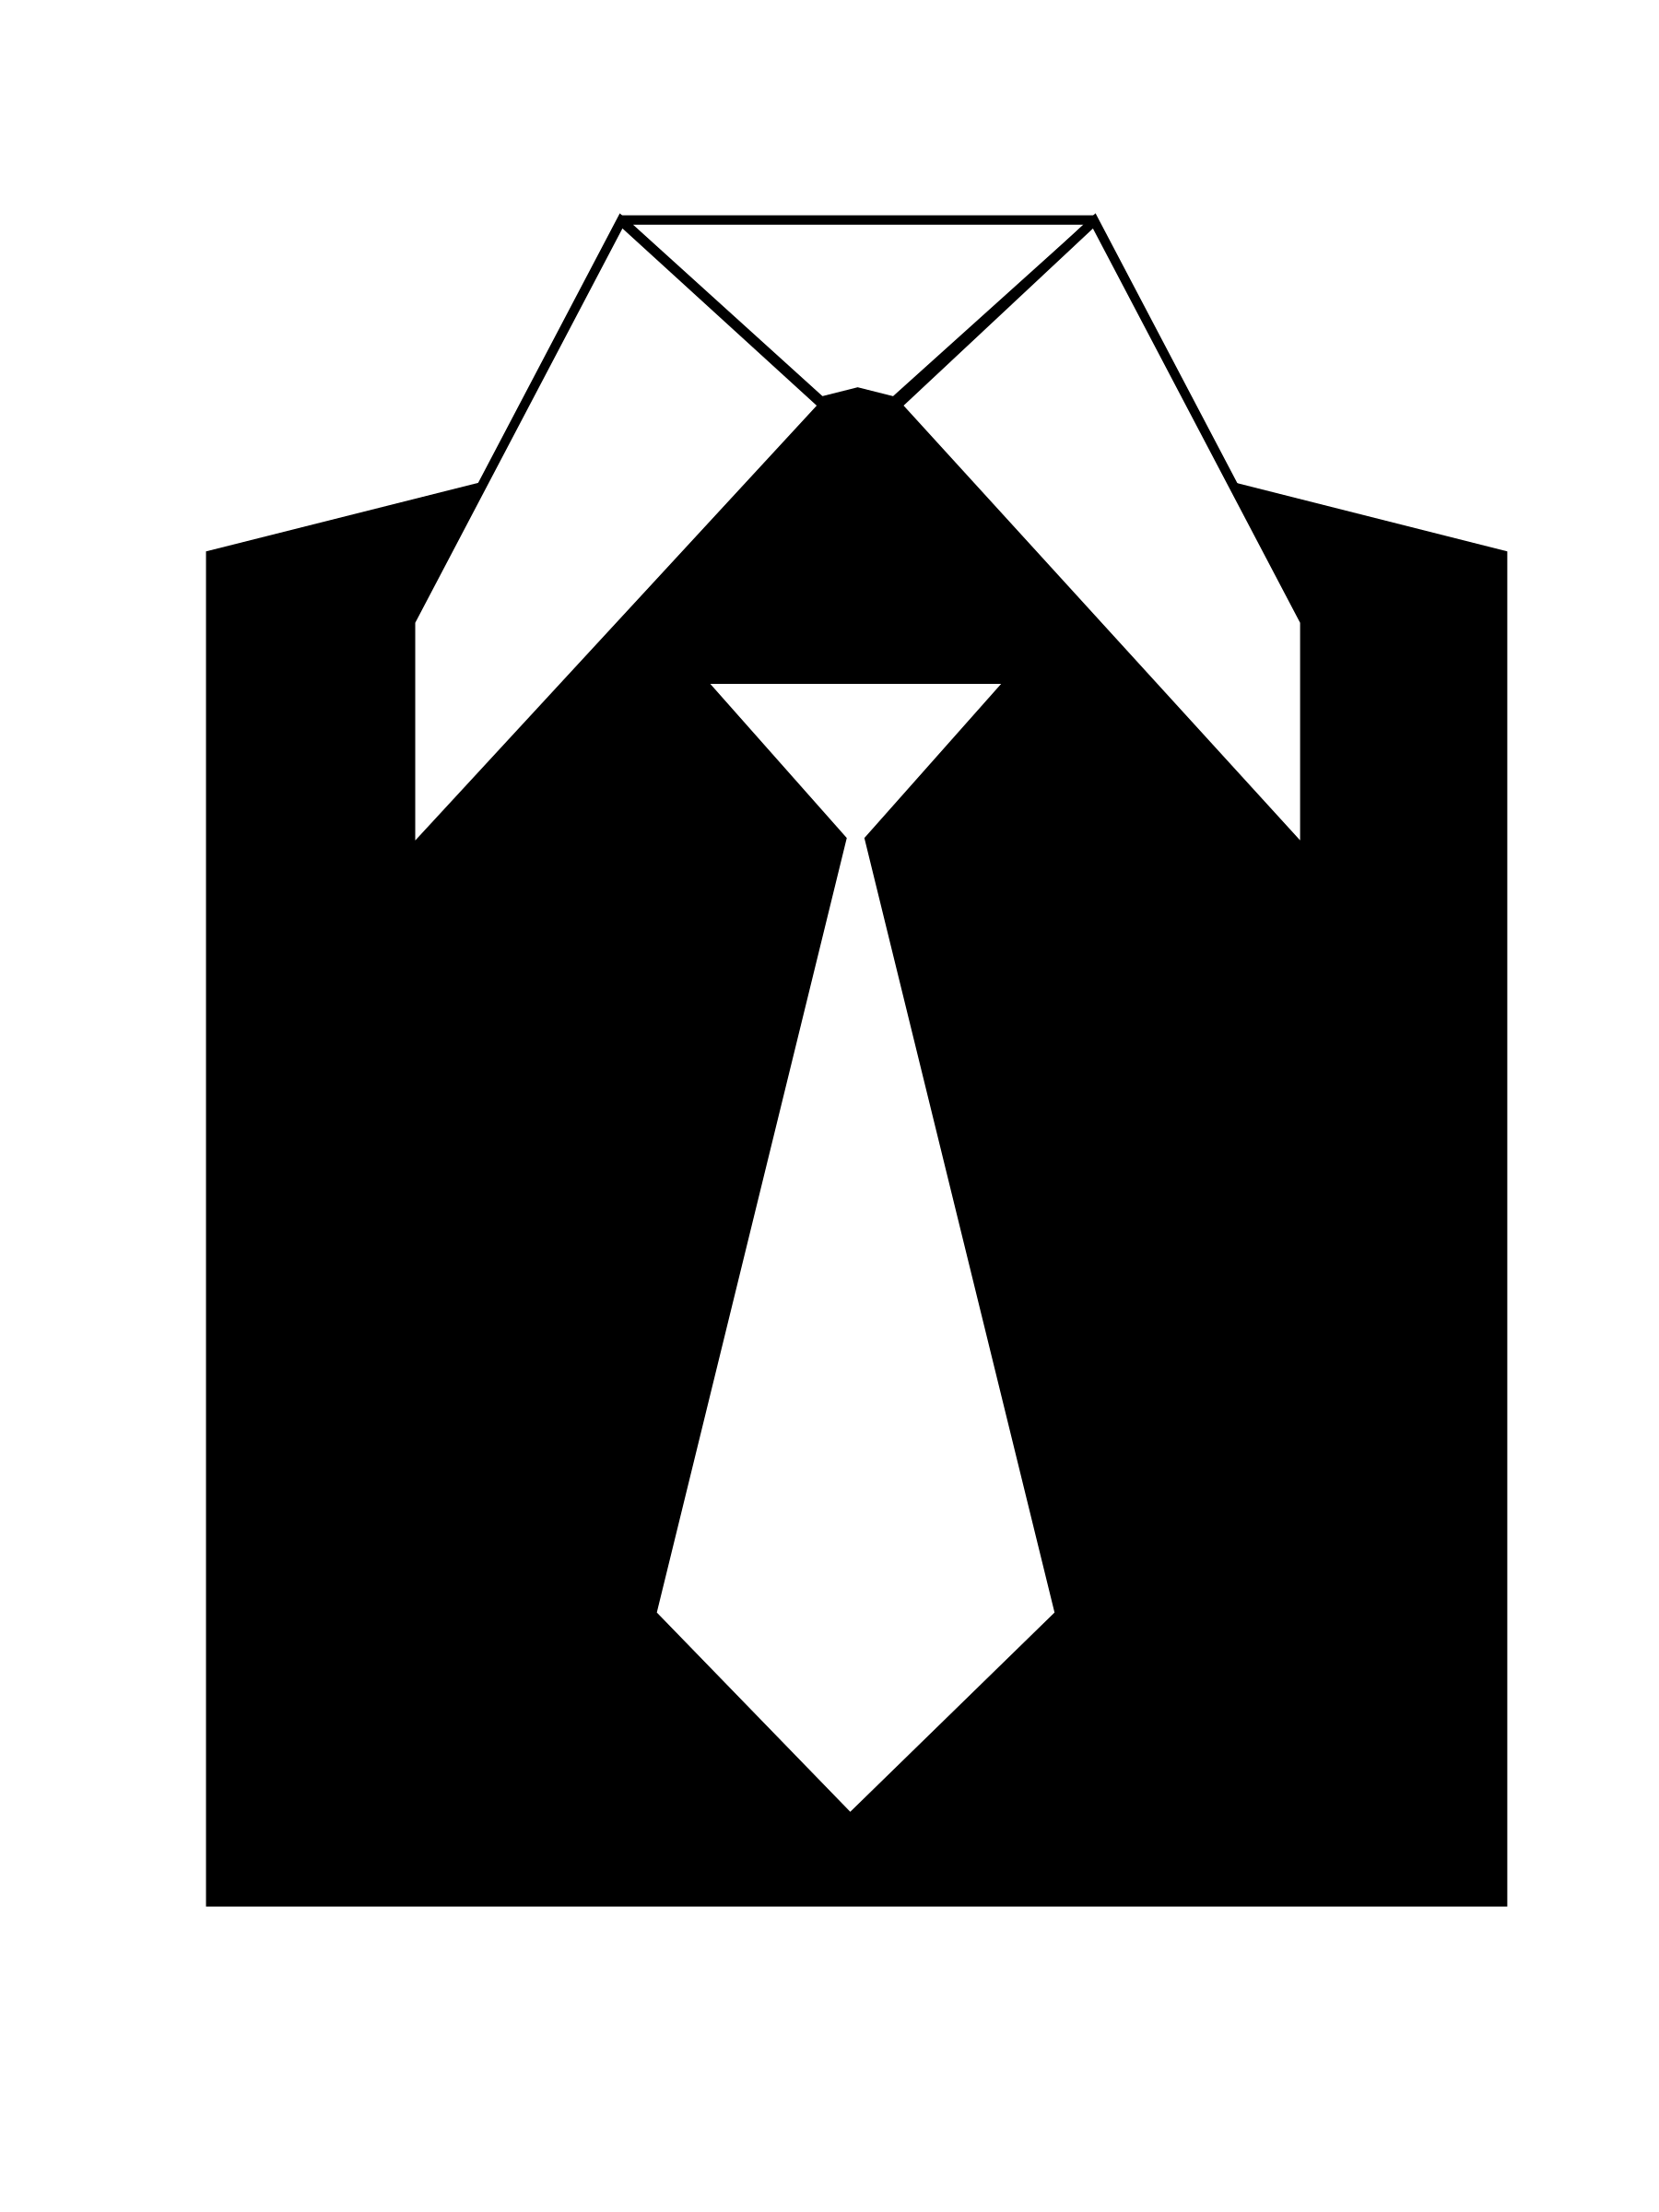 Black coat suit icon b/w by monsterbraingames